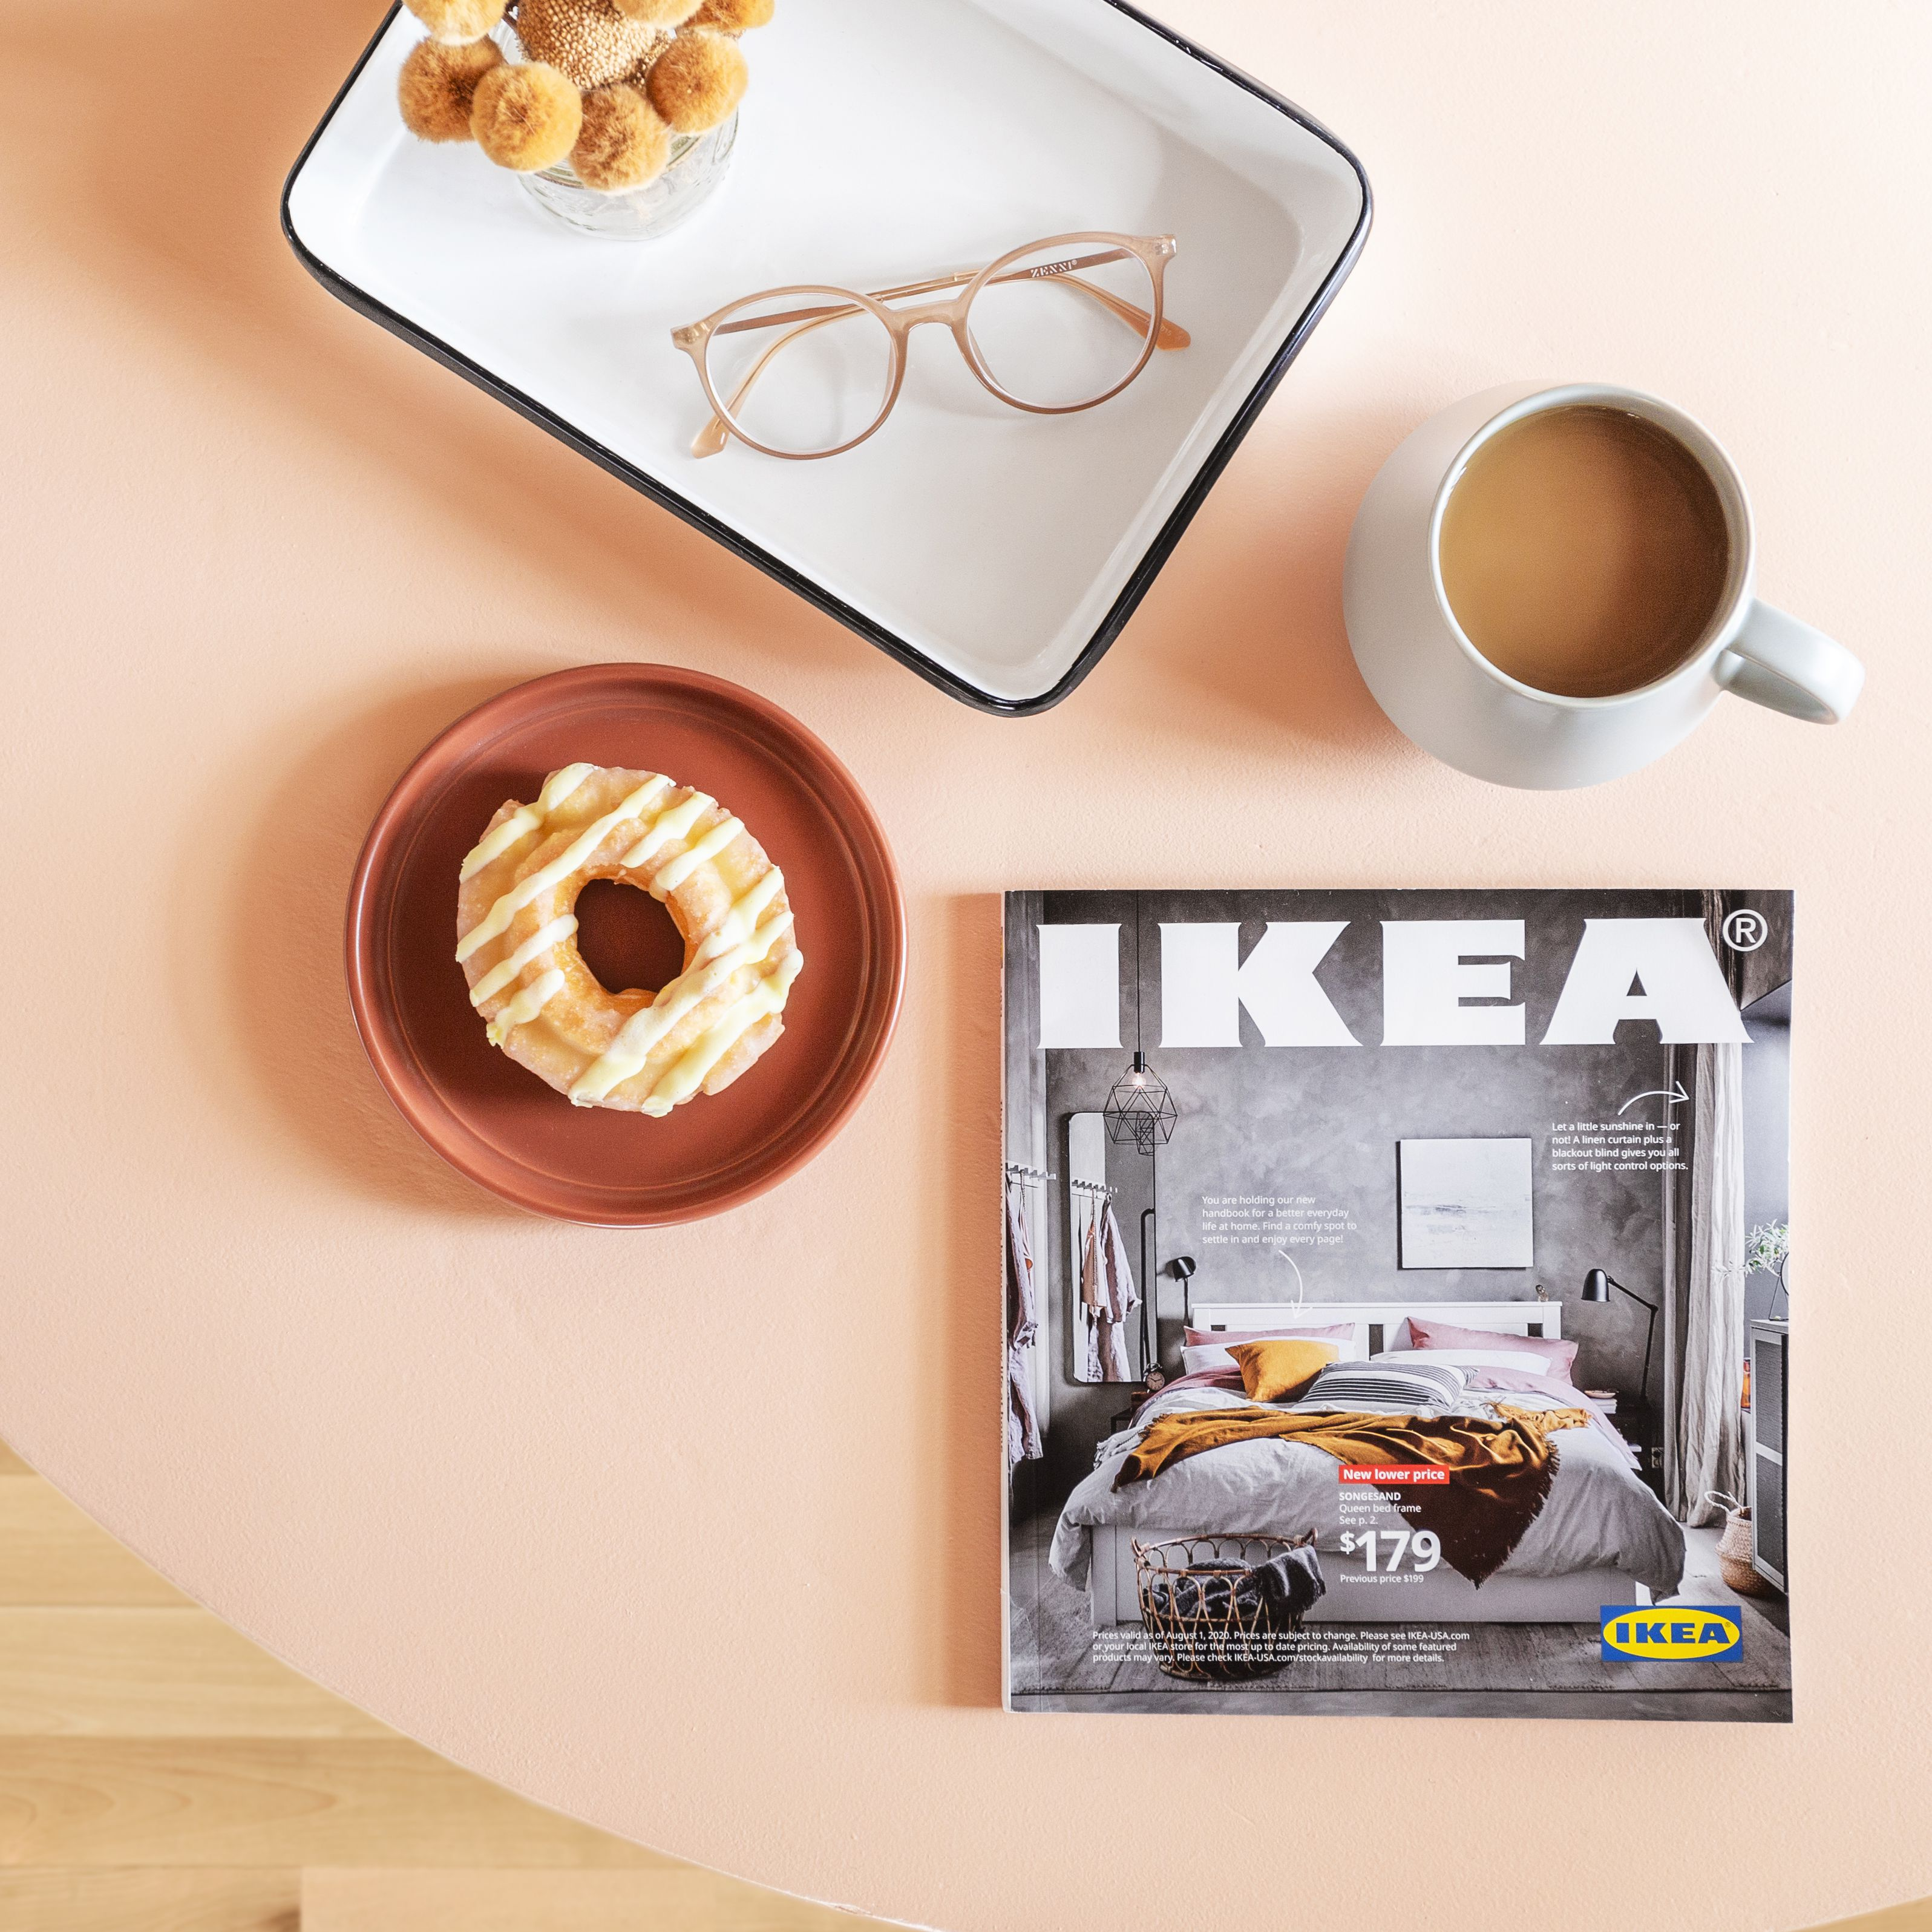 How To Request A Free Ikea Catalog For 2021